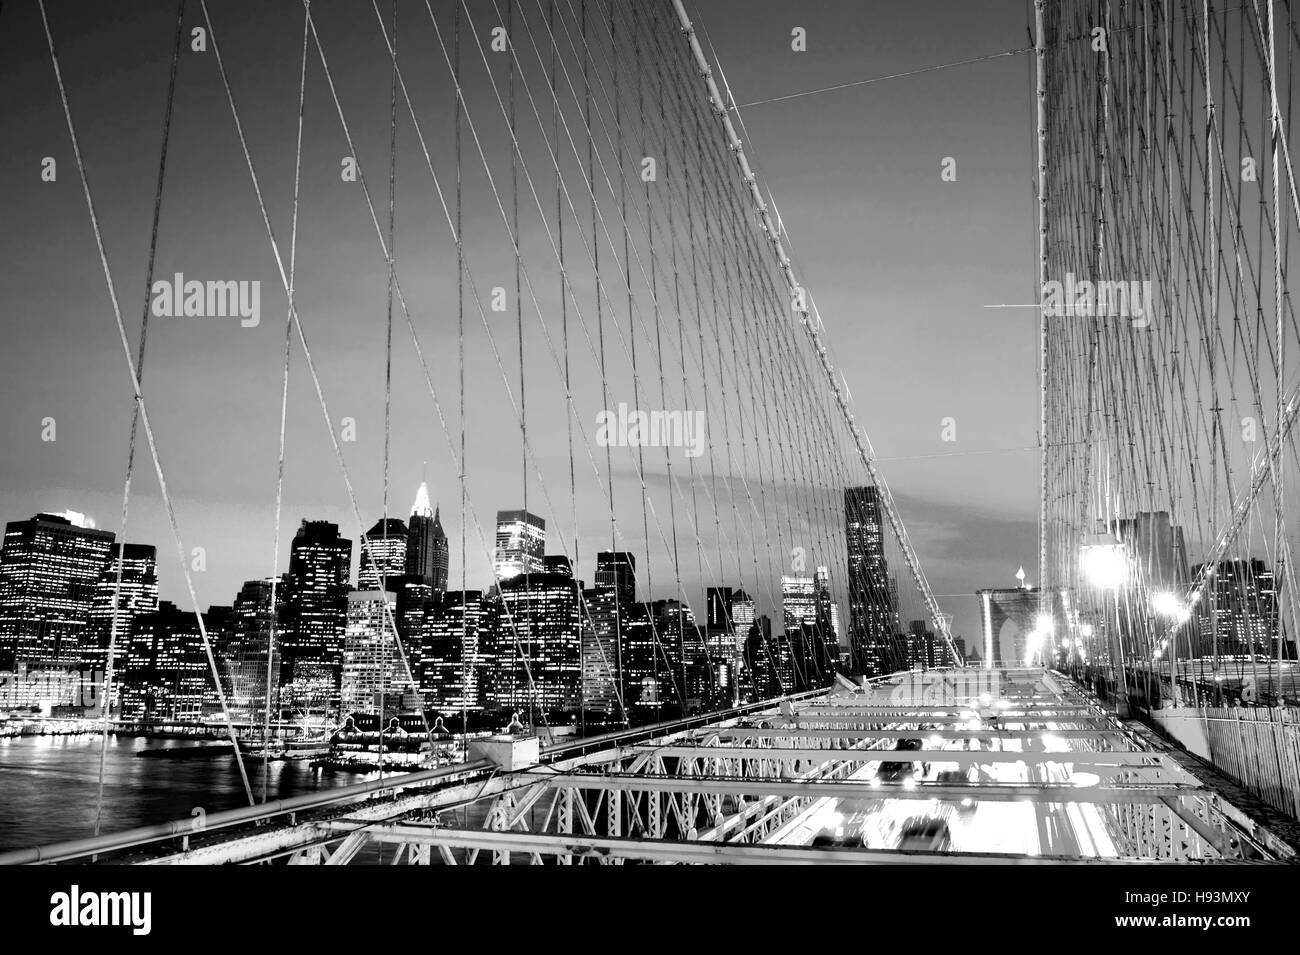 Brooklyn Bridge Wallpaper Black And White Stock Photos Images